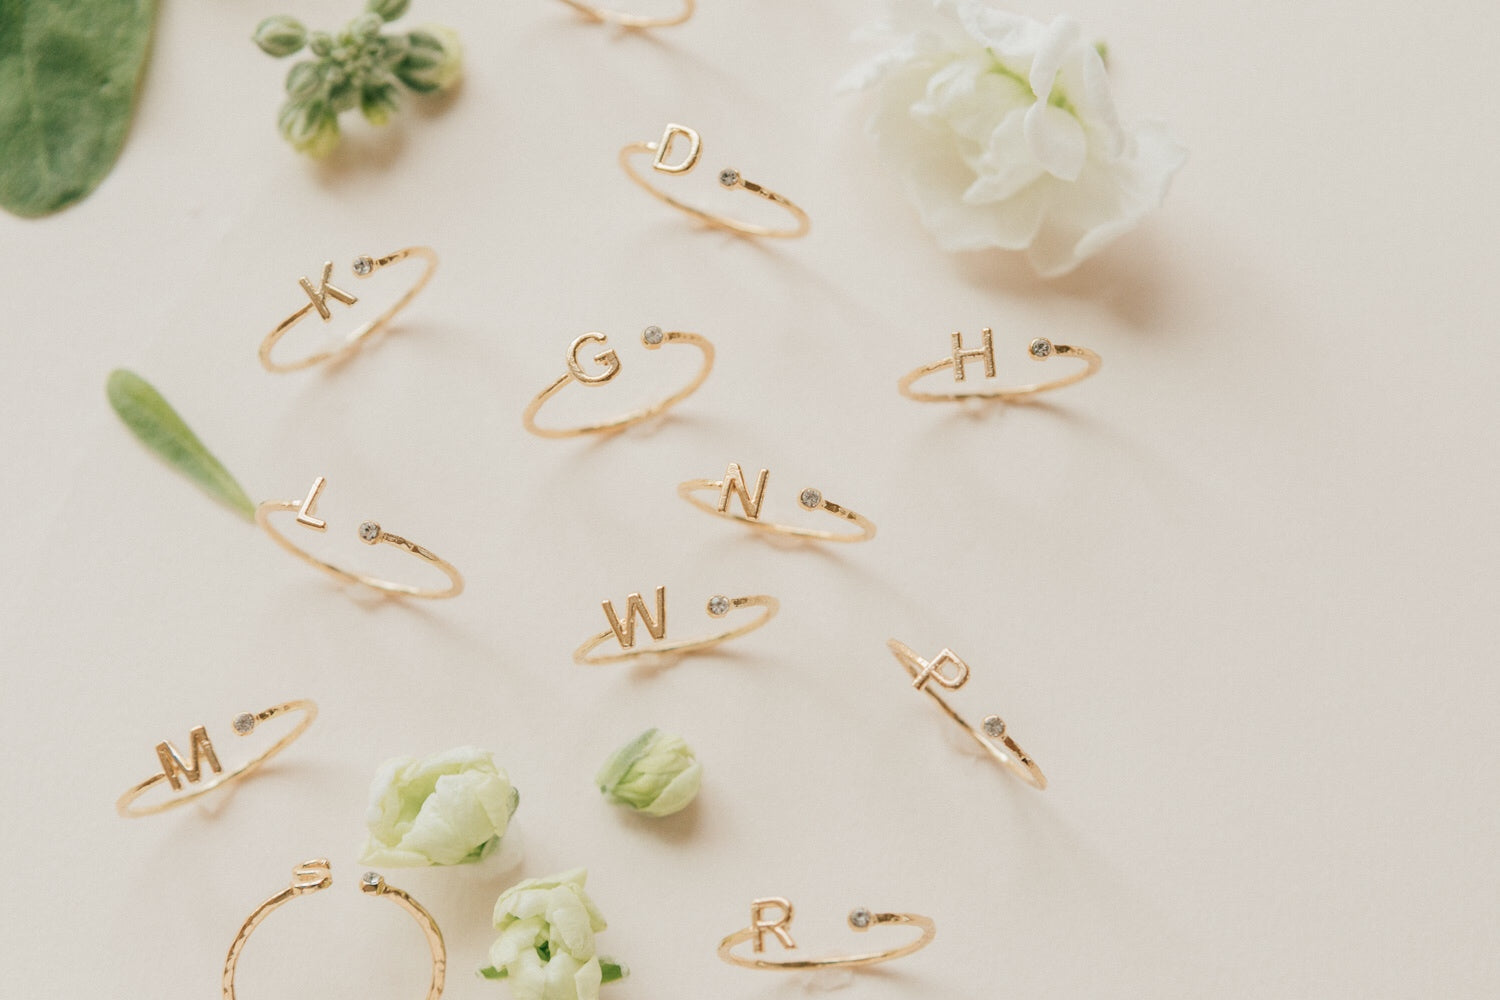 Initial Rings, G, N, W, personalized jewelry, Katie Dean